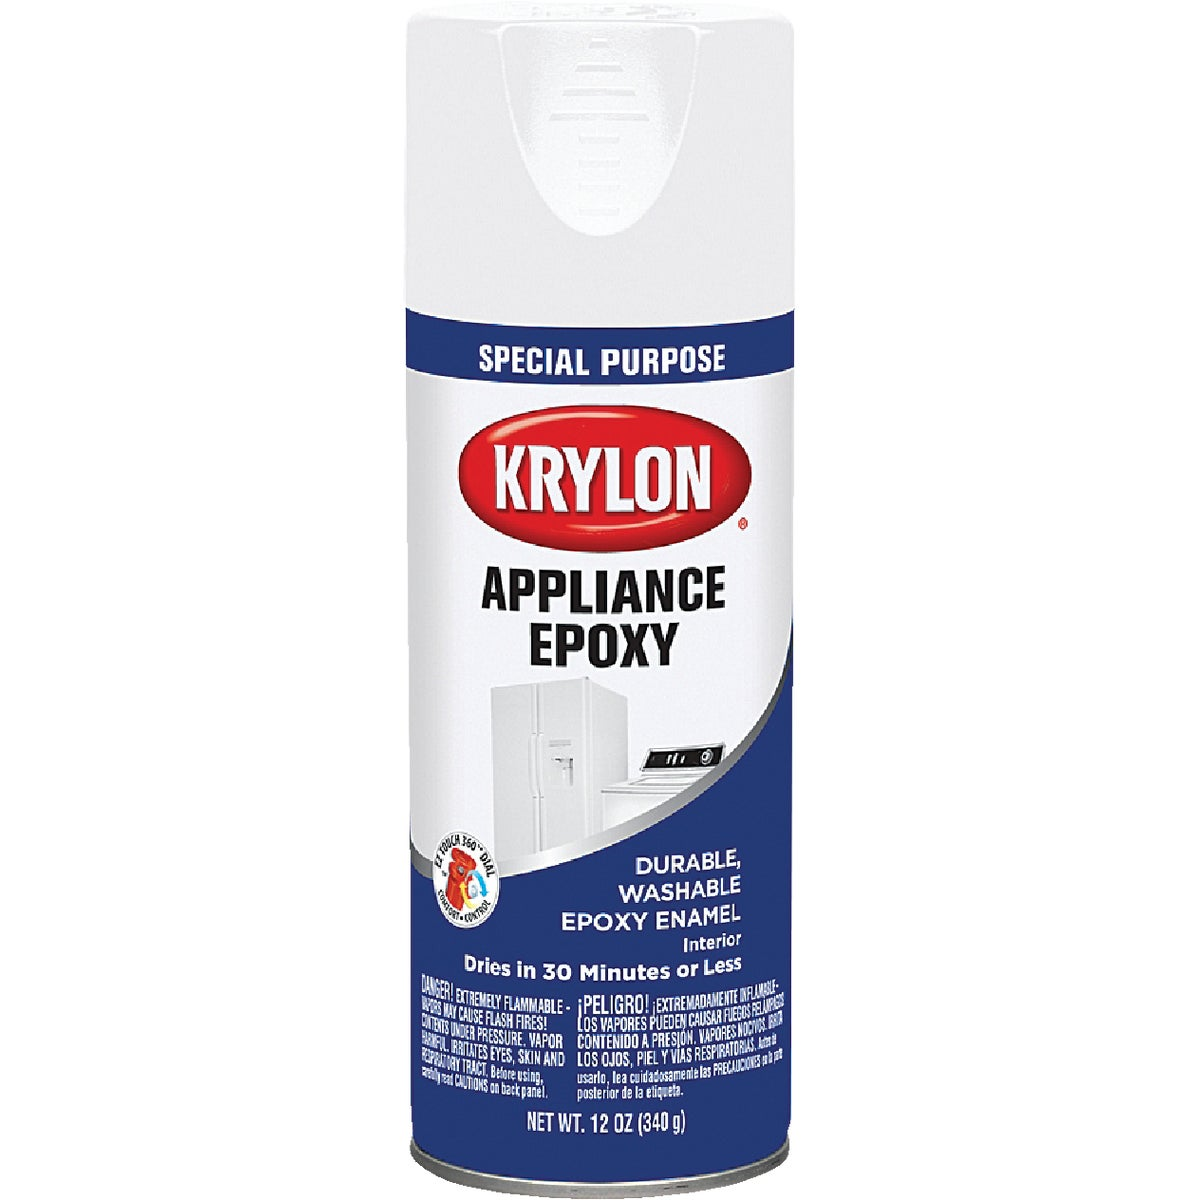 WHT APPLIANC SPRAY EPOXY - 3201 by Krylon/consumer Div